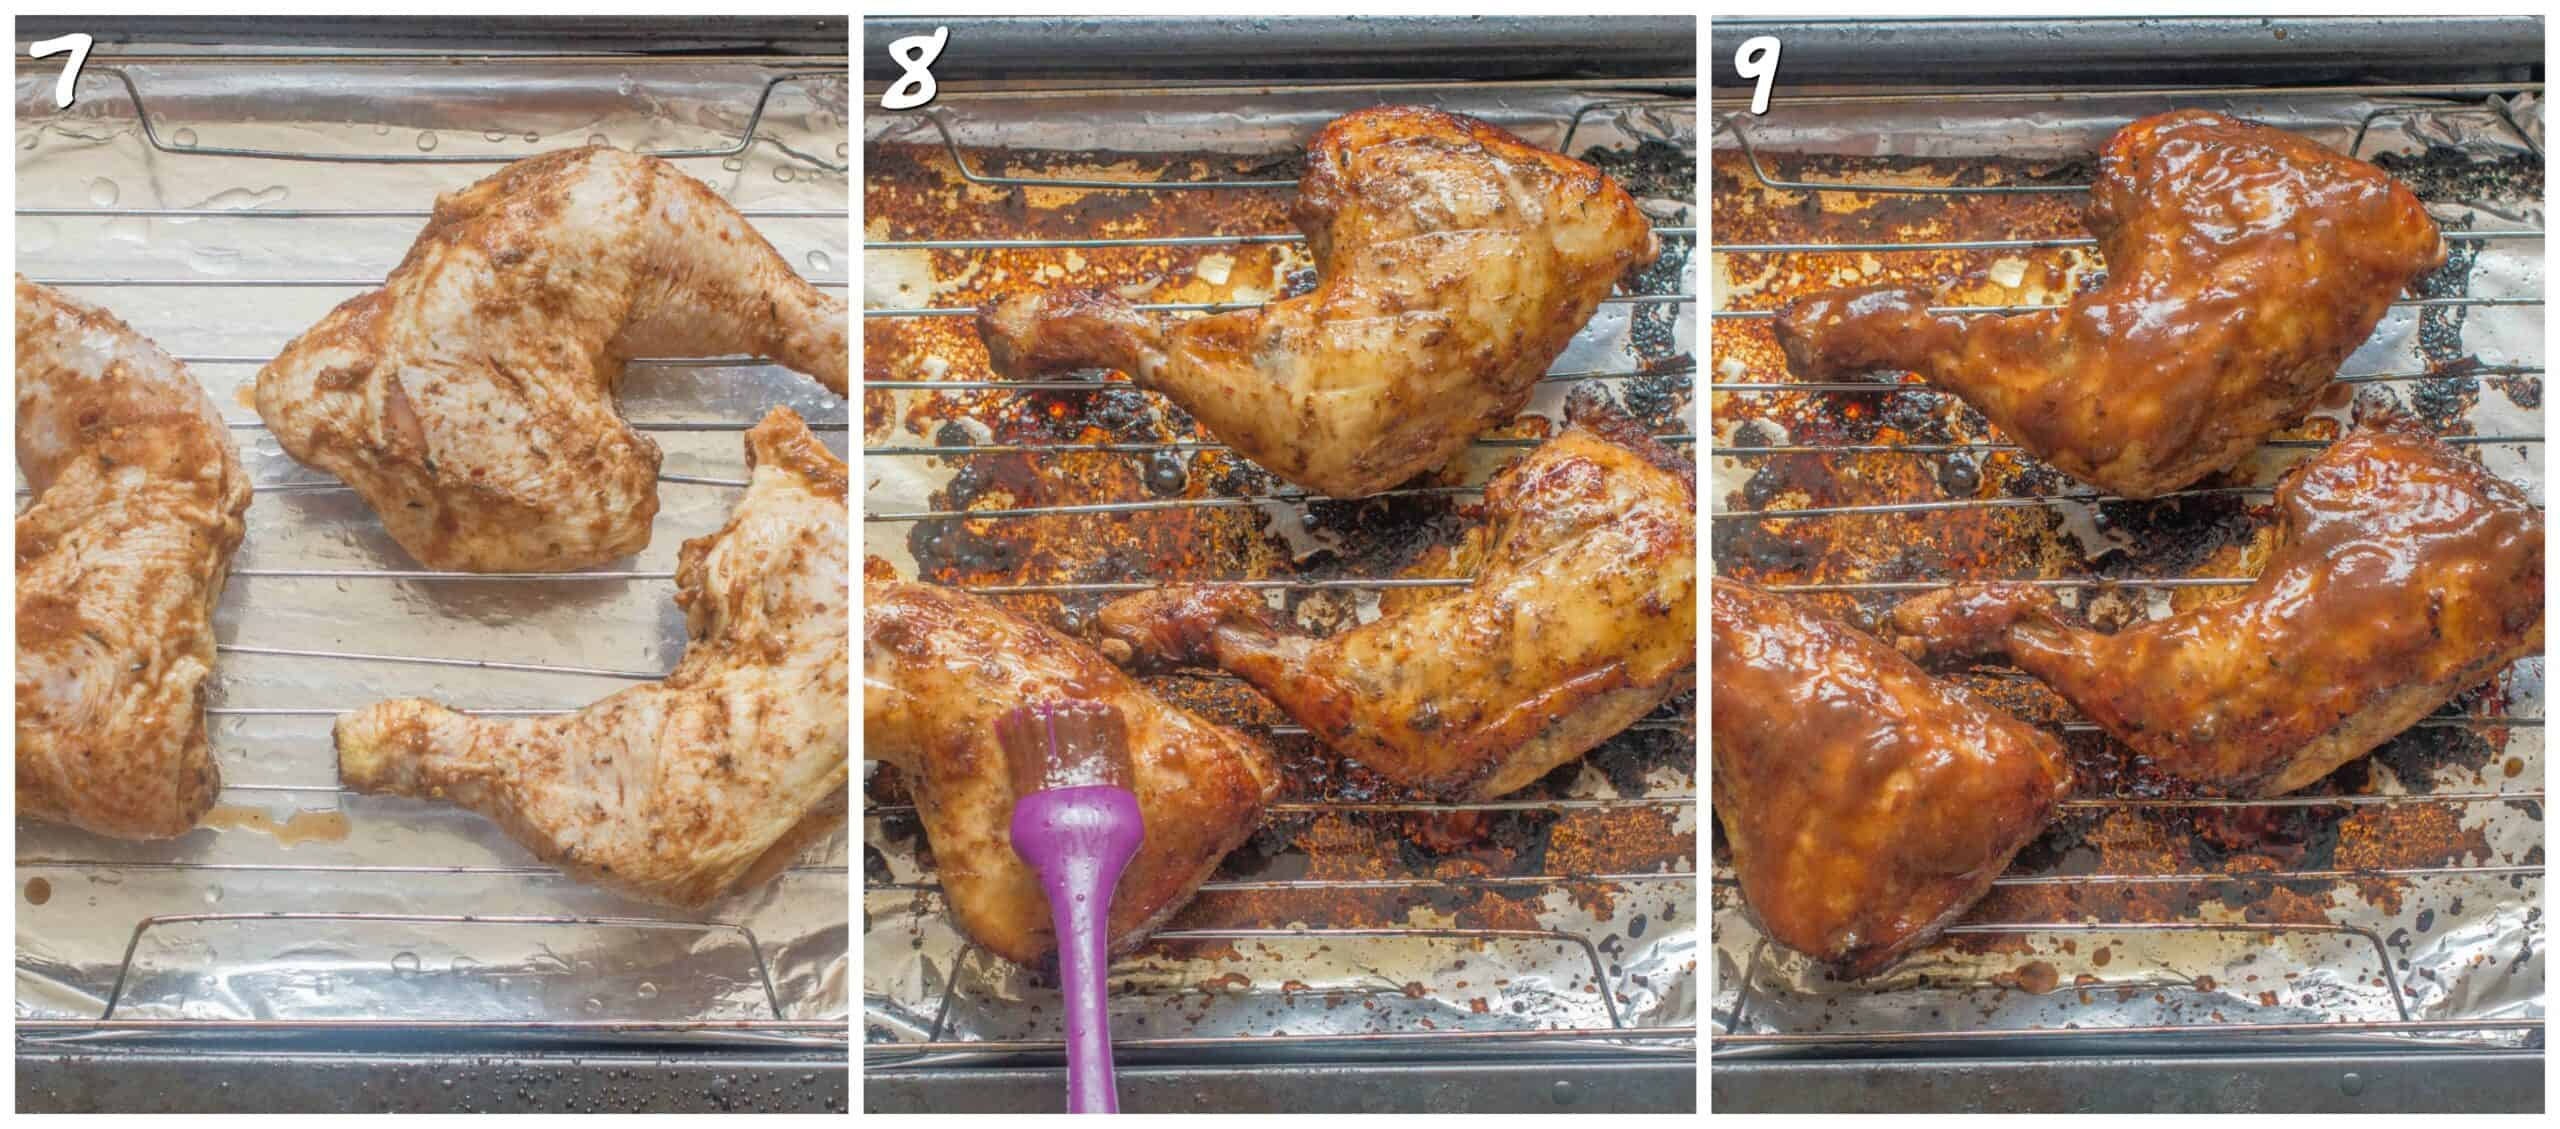 steps 7-9 coating the cooked chicken